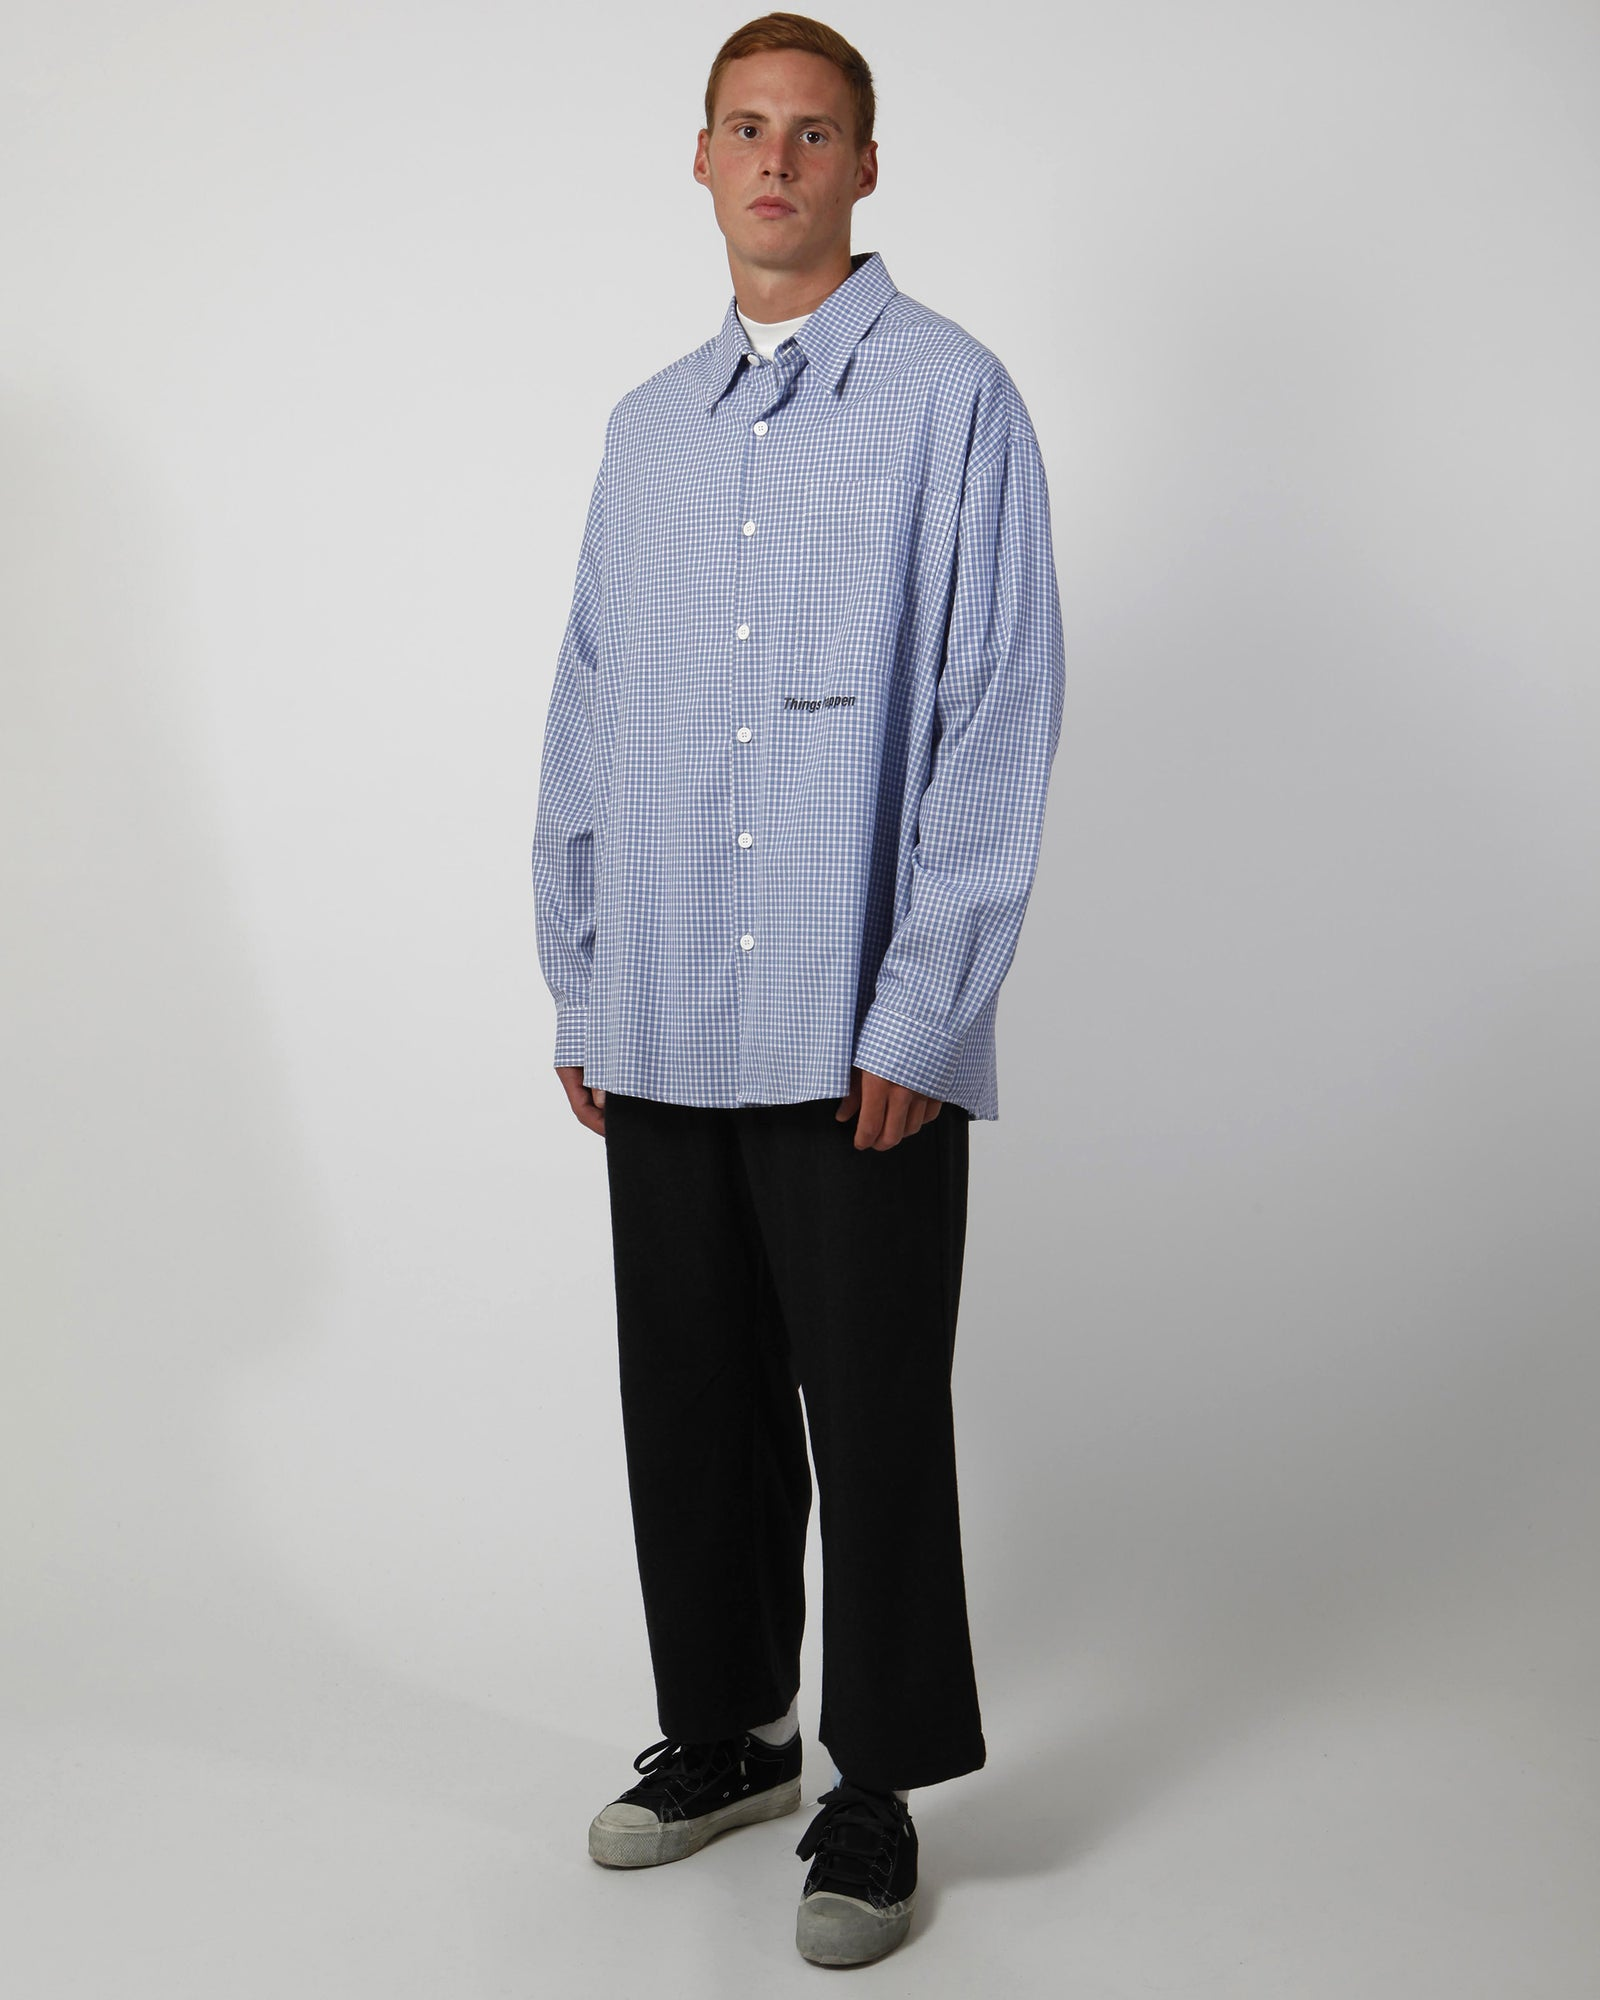 Oversized check button down shirt